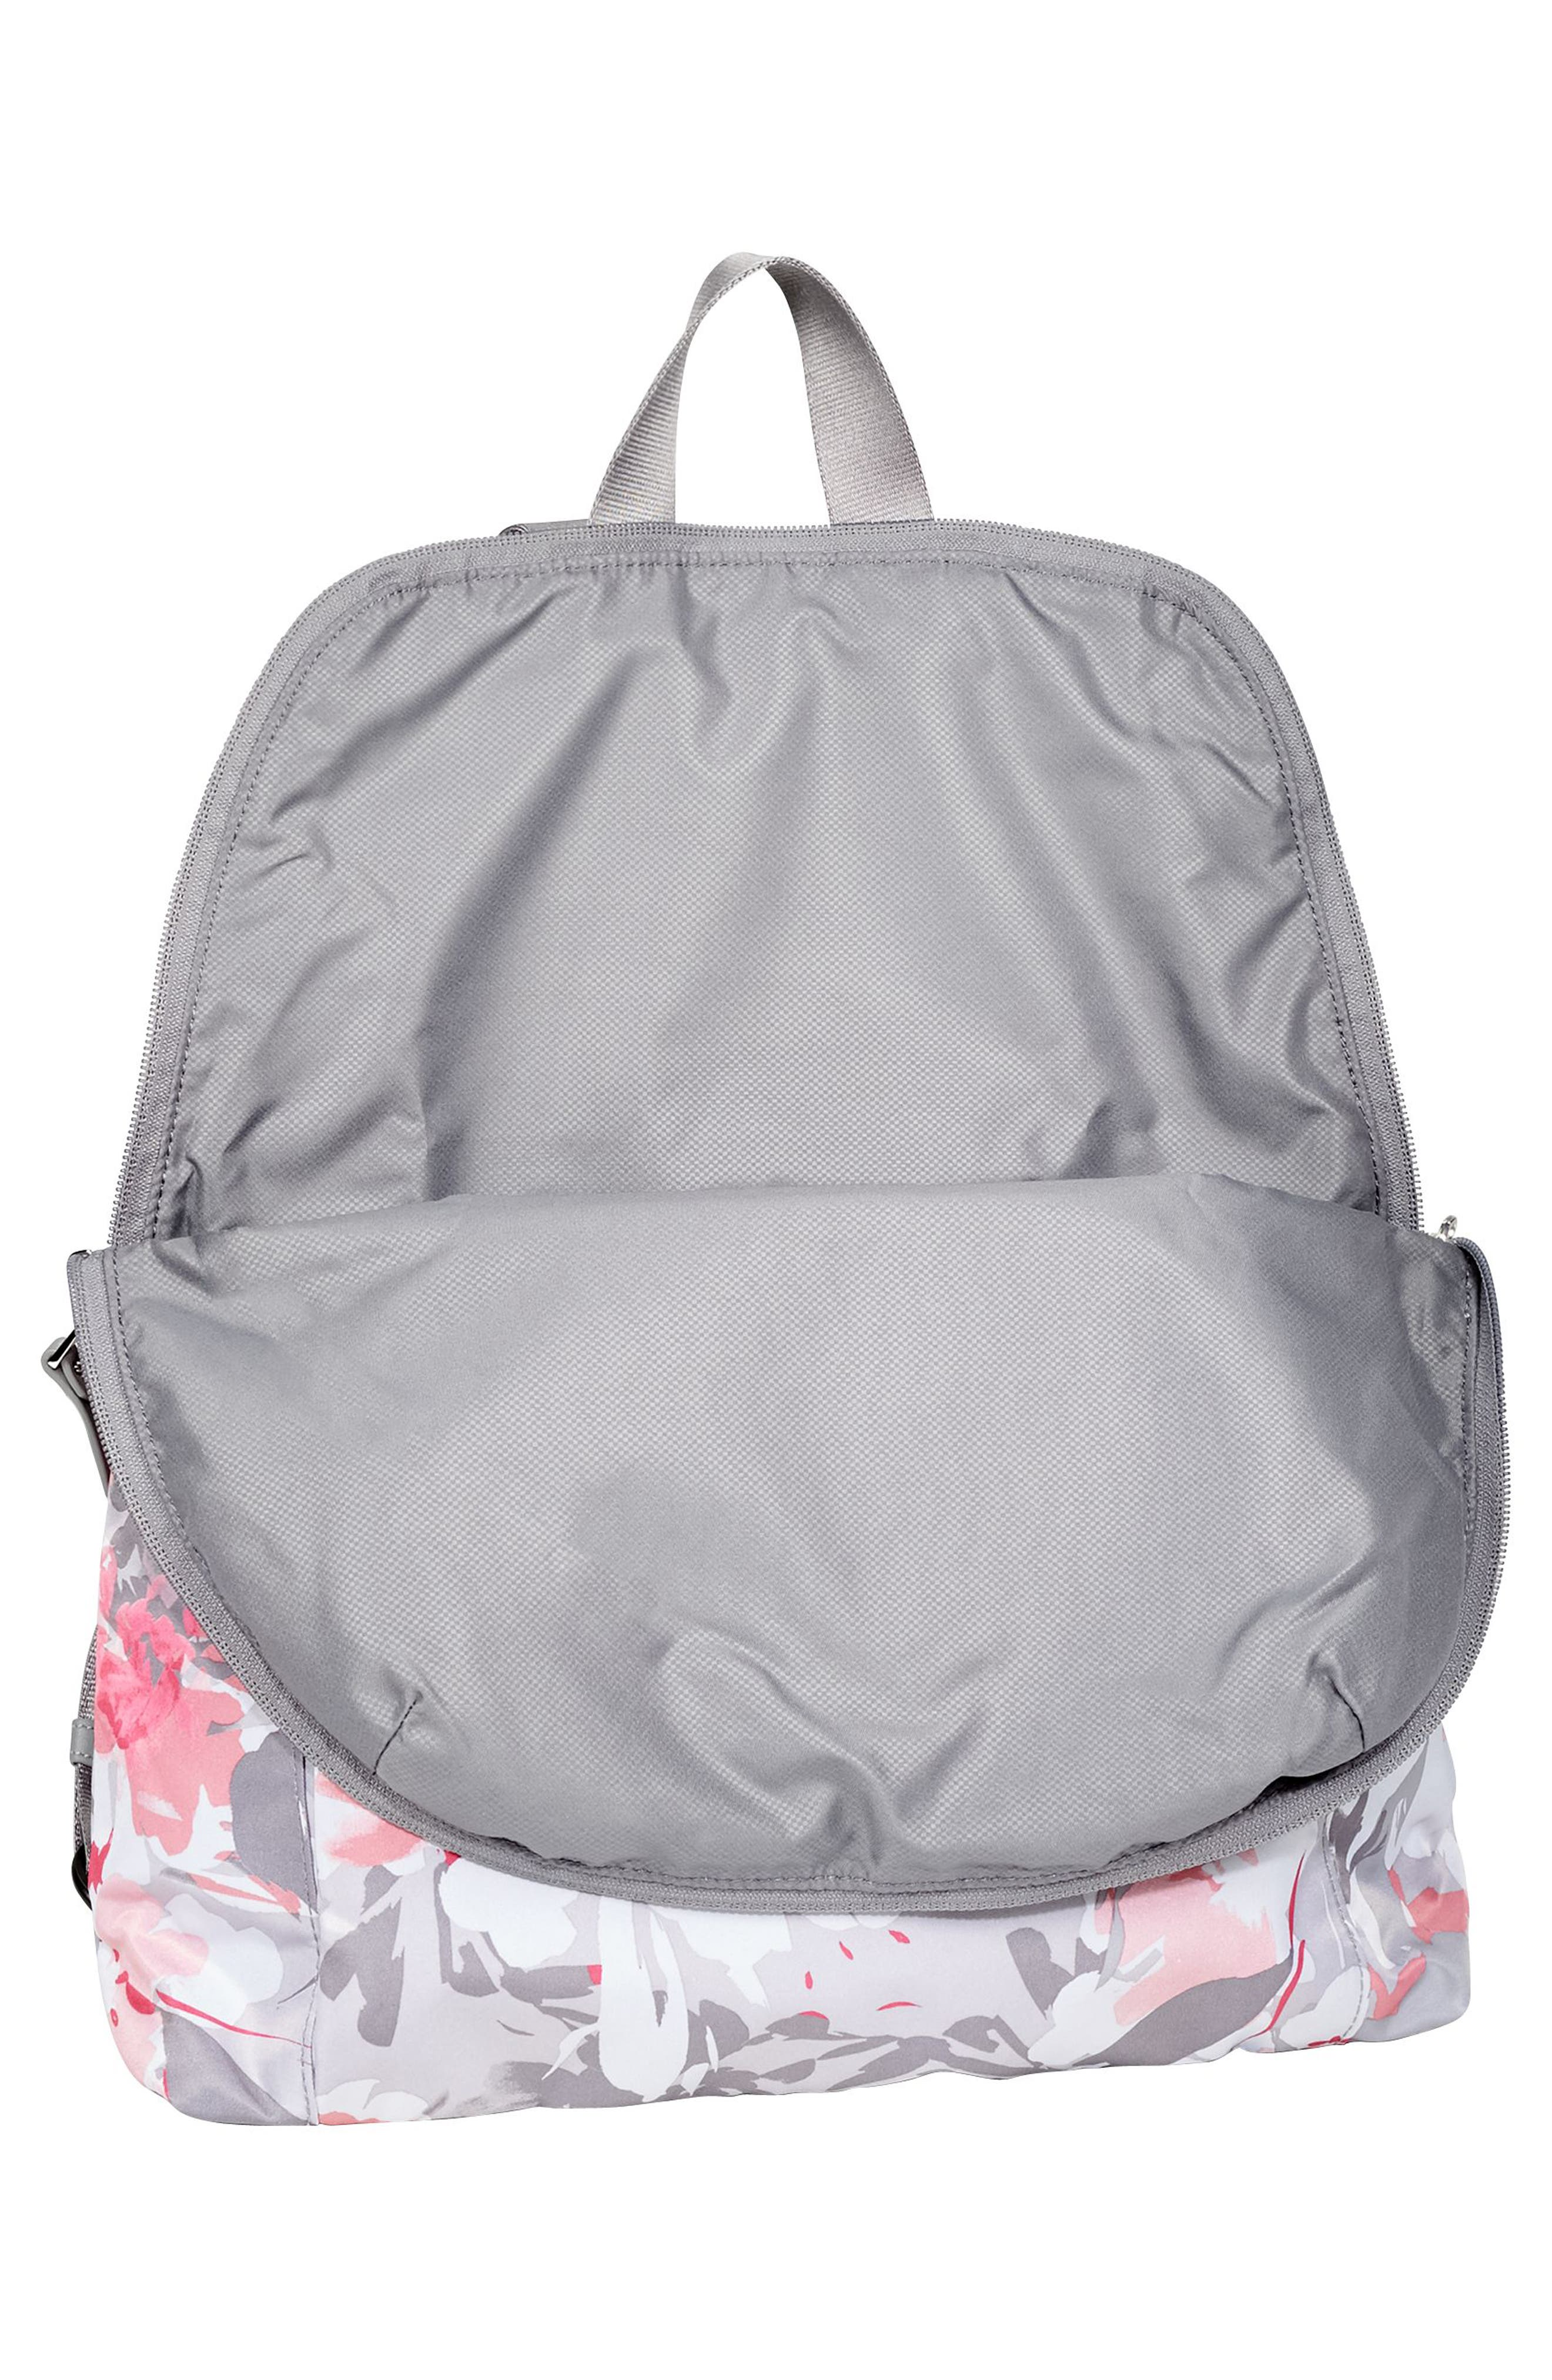 Just in Case<sup>®</sup> Back-Up Tavel Bag,                             Alternate thumbnail 4, color,                             020